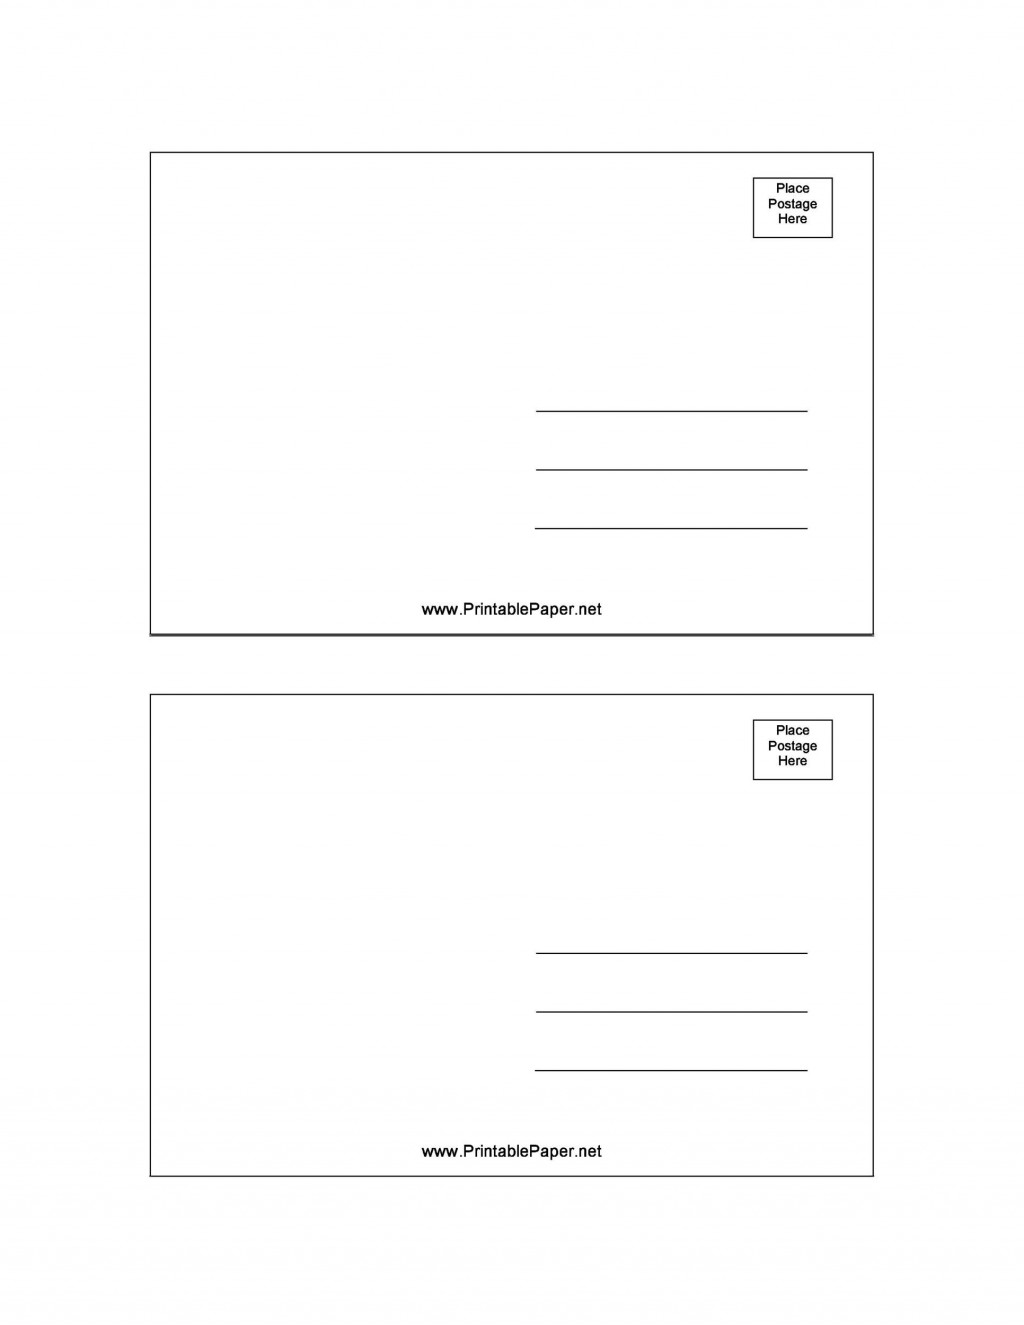 008 Amazing Free Postcard Template For Word Example  Printable Christma Place Card 4x6Large